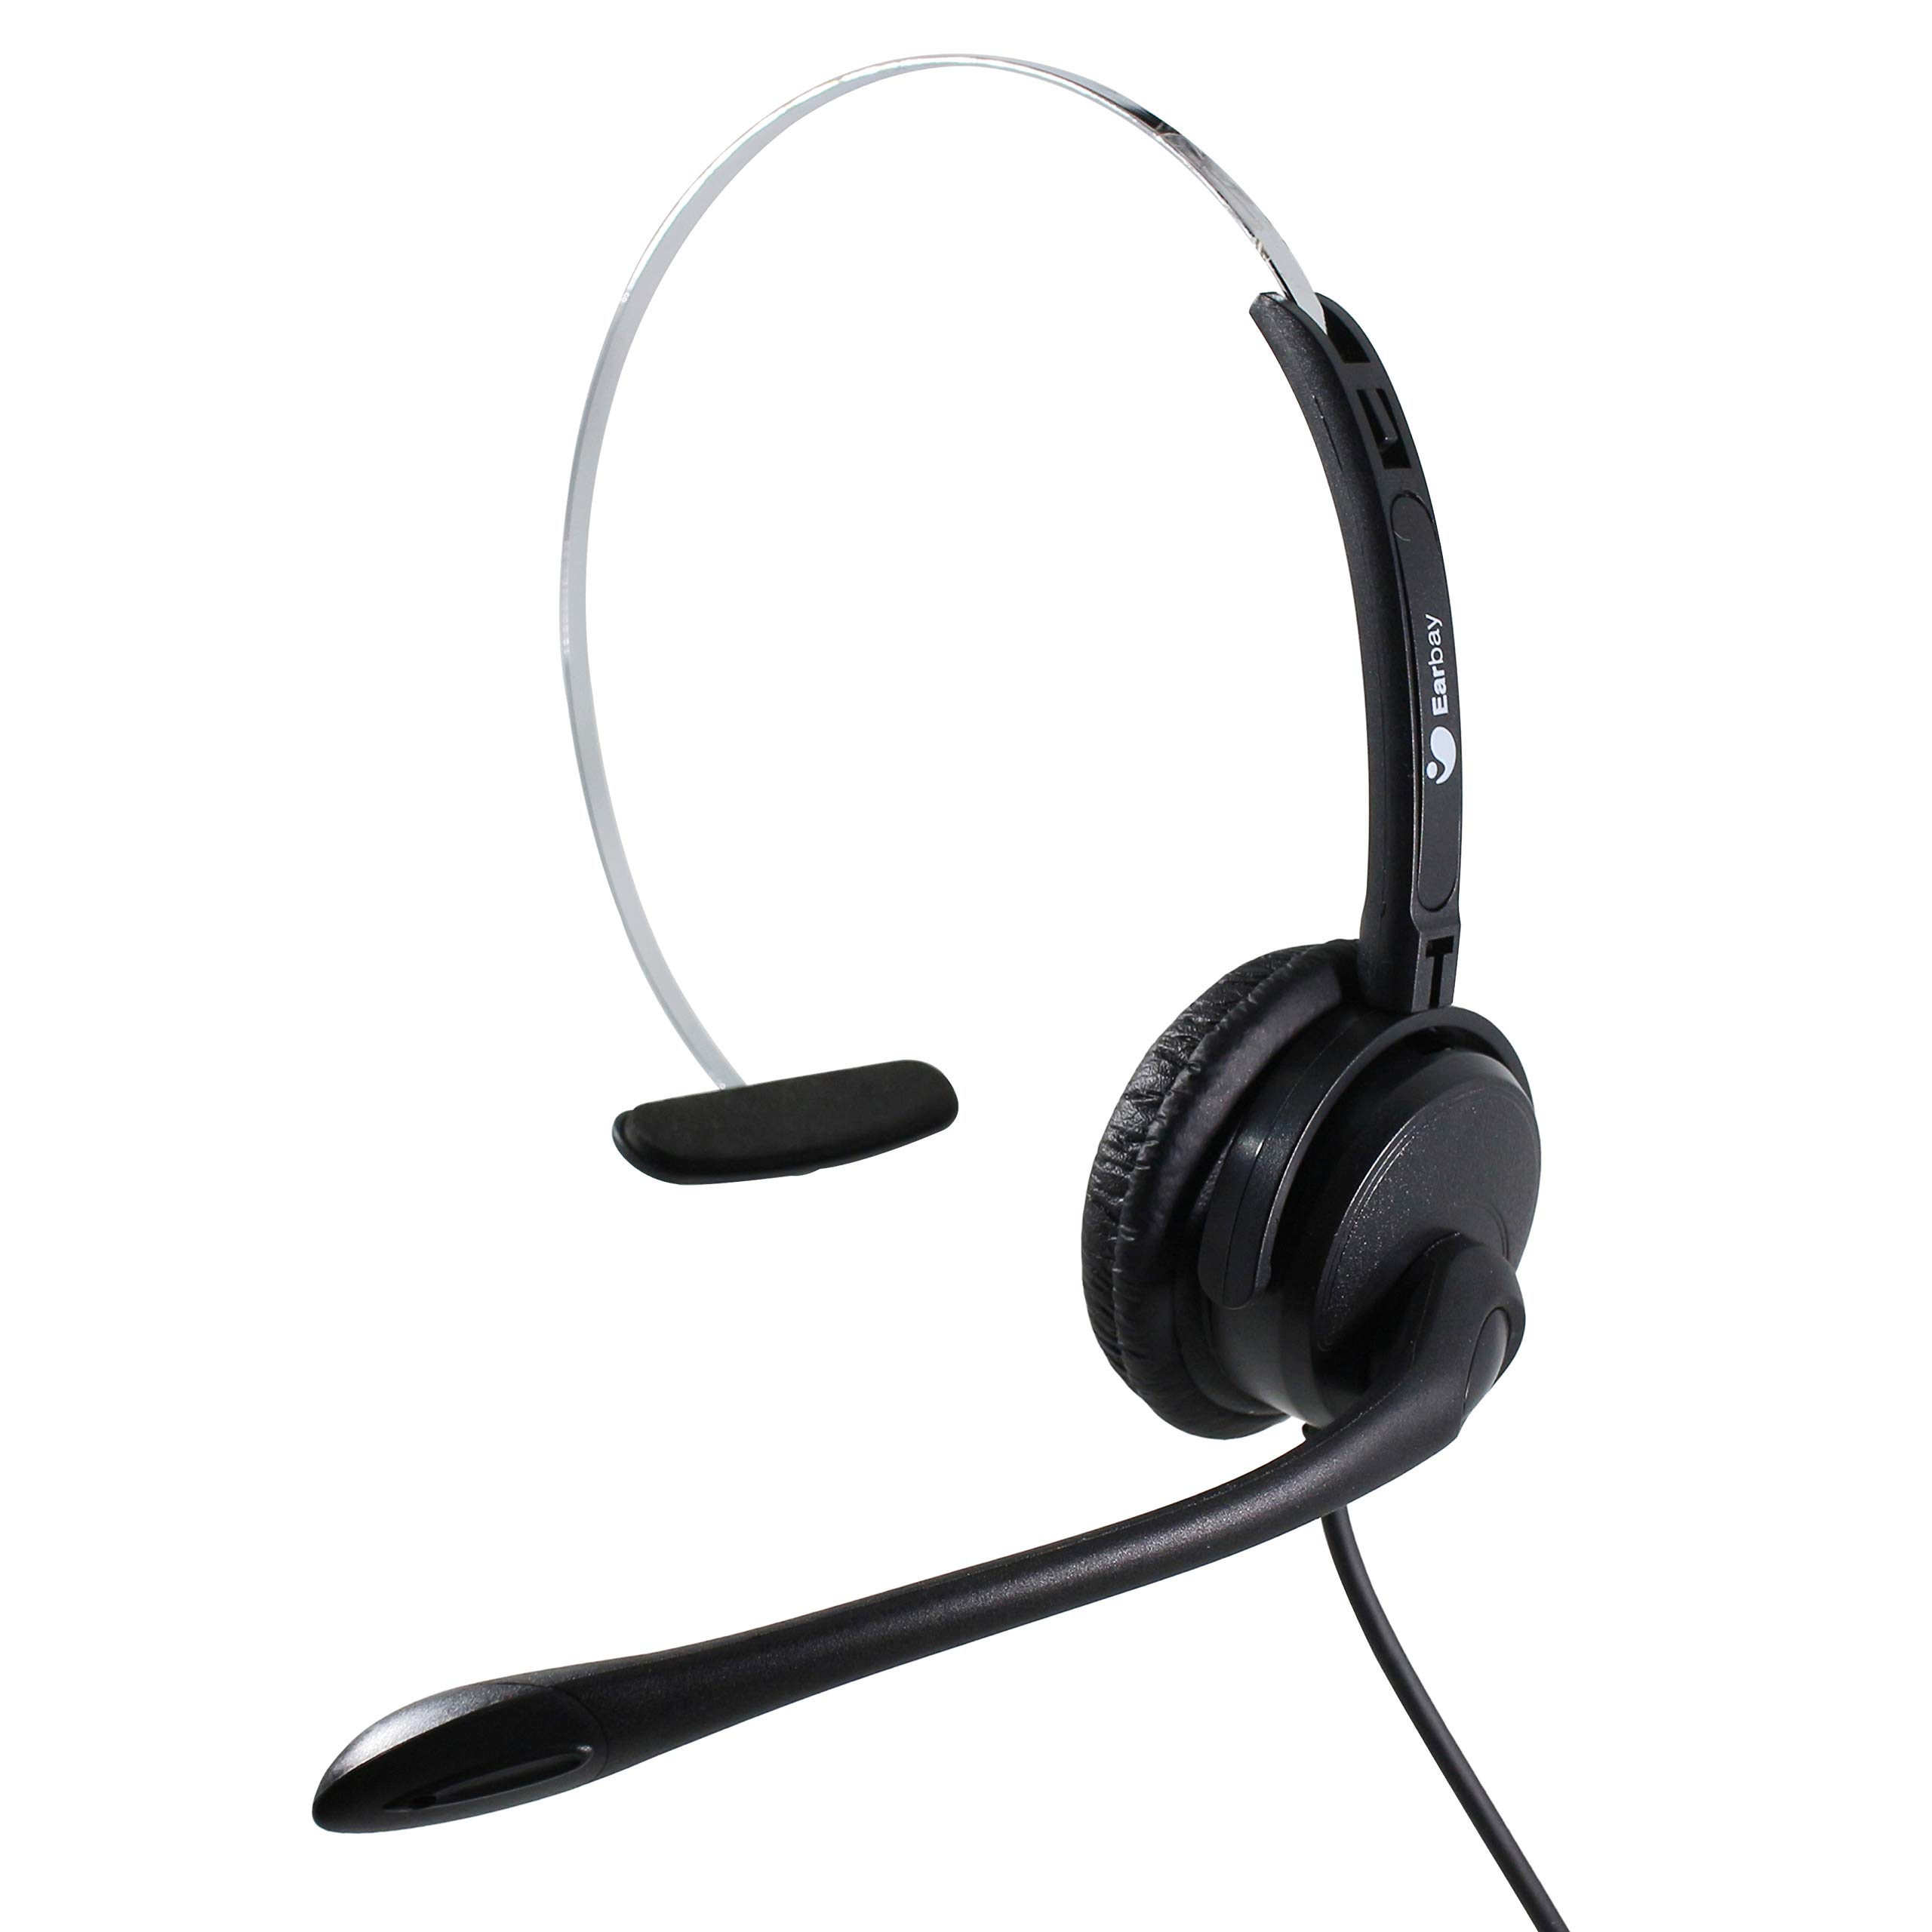 Earbay Call Center Noise Cancelling Headphone Monaural Telephone Headset with RJ Connector Desk Phone Headphones PC Headset